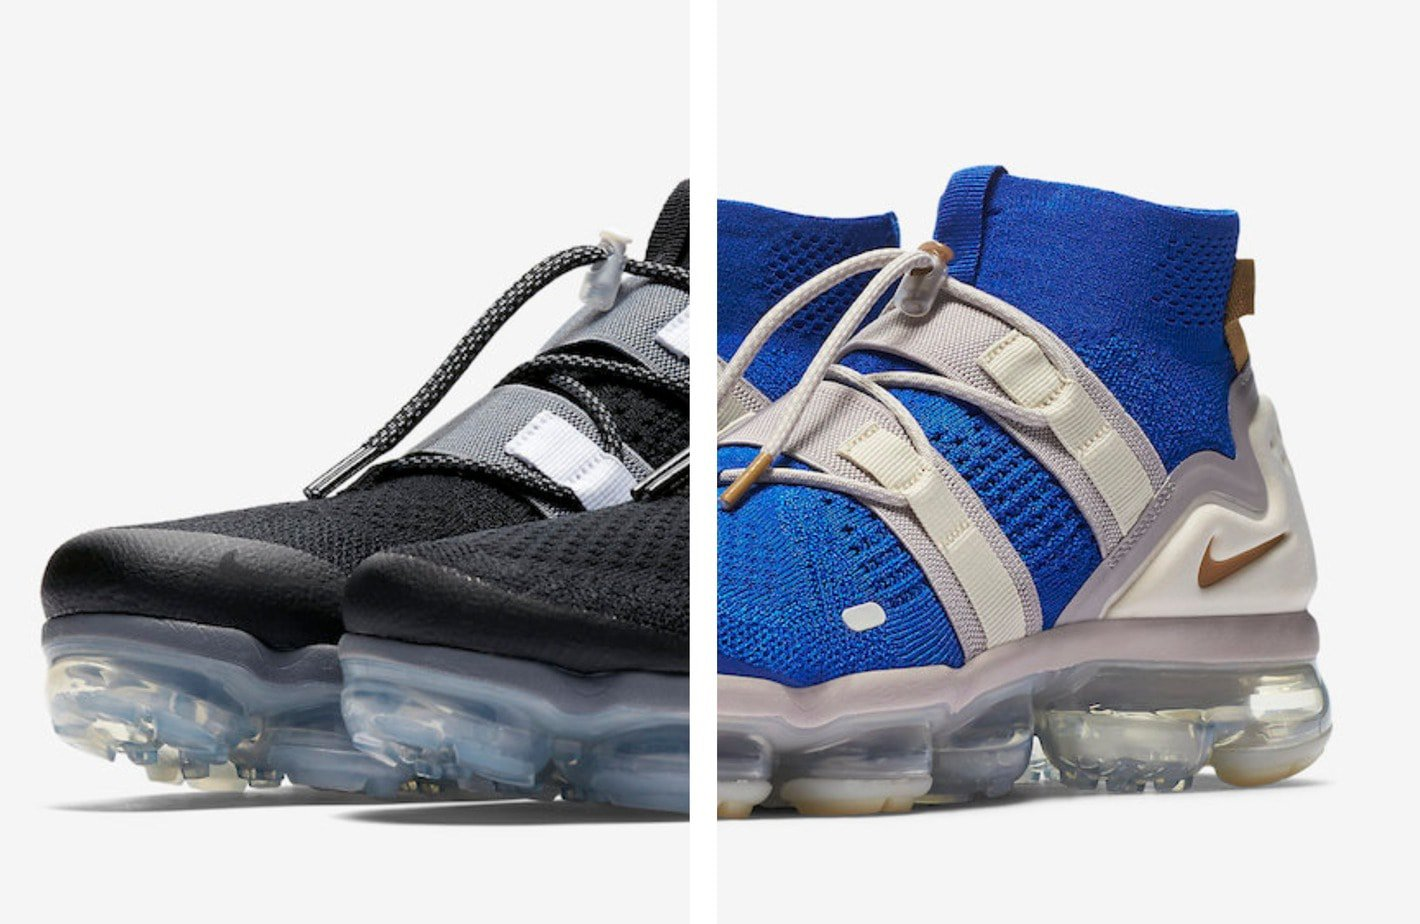 249d093288adc Nike s Air Vapormax Flyknit Utility is Launching in Two Hot New Colorways  This August